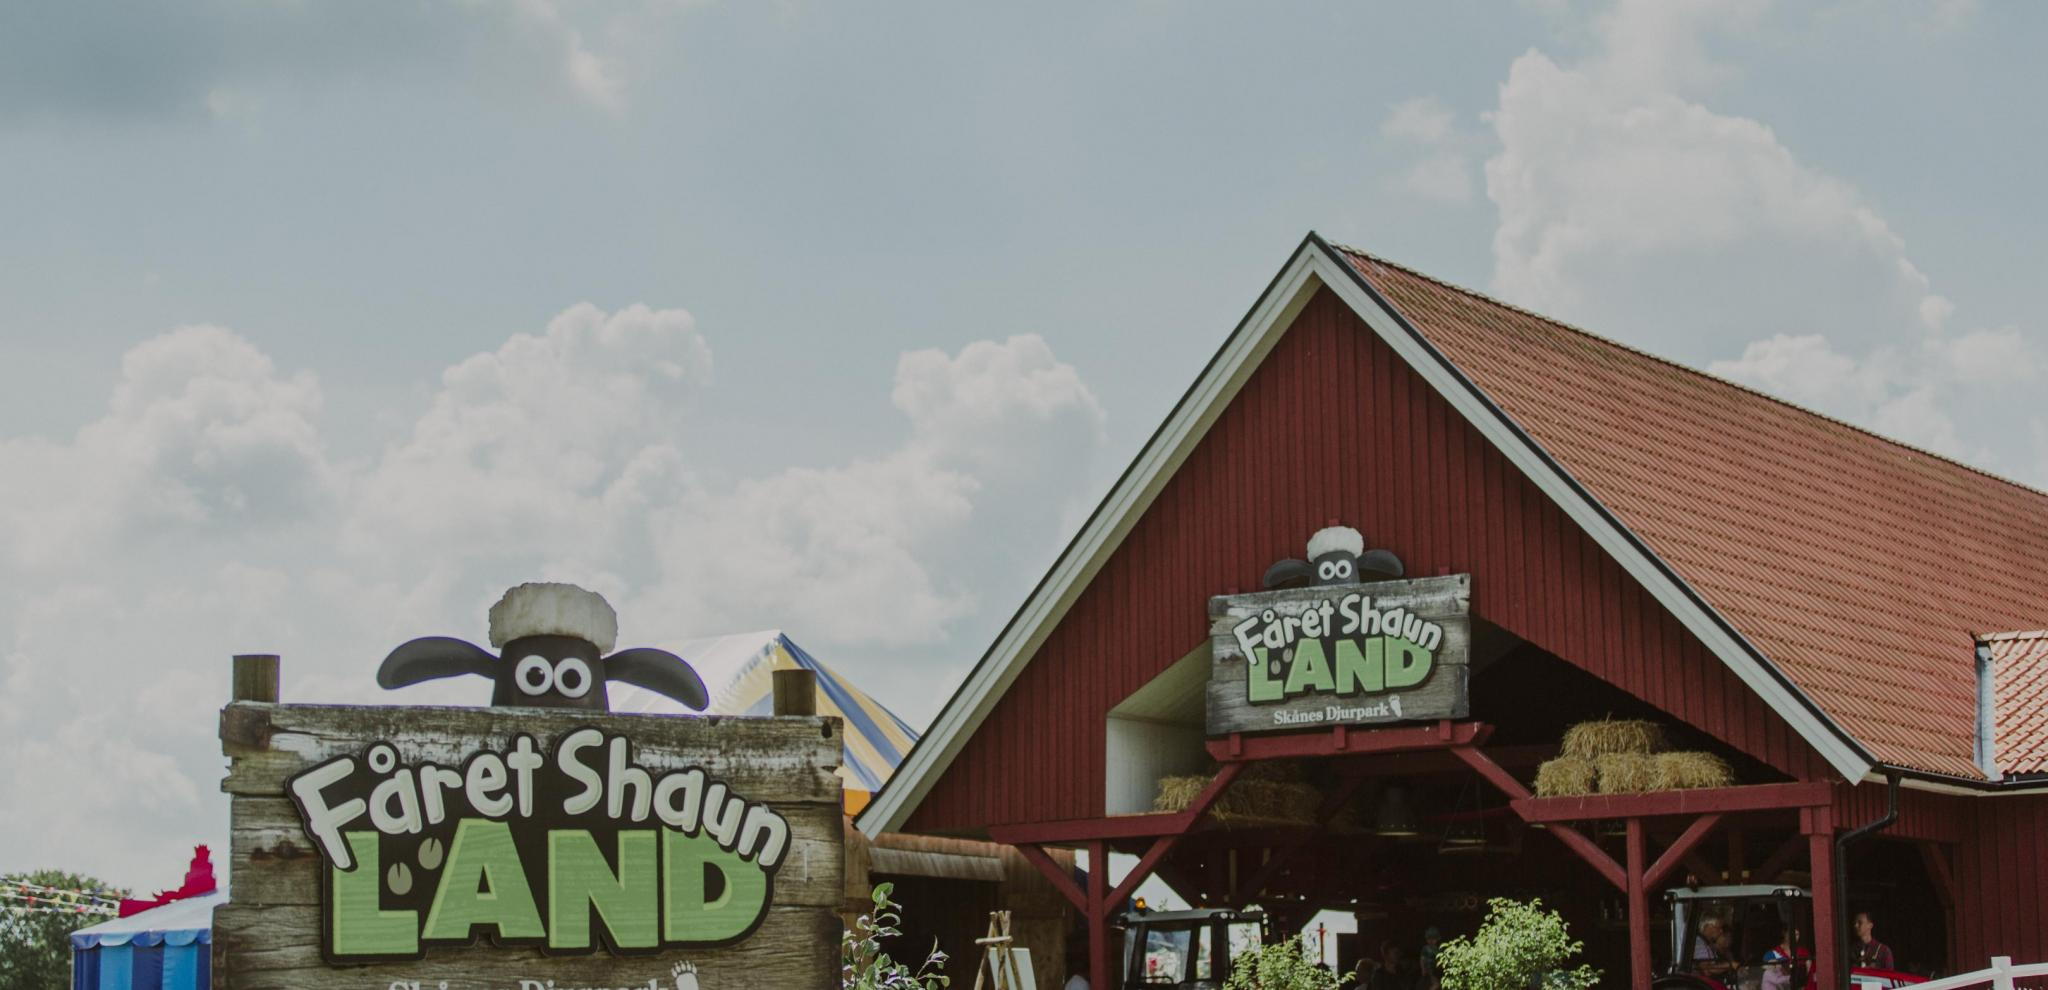 Shaun the Sheep Land